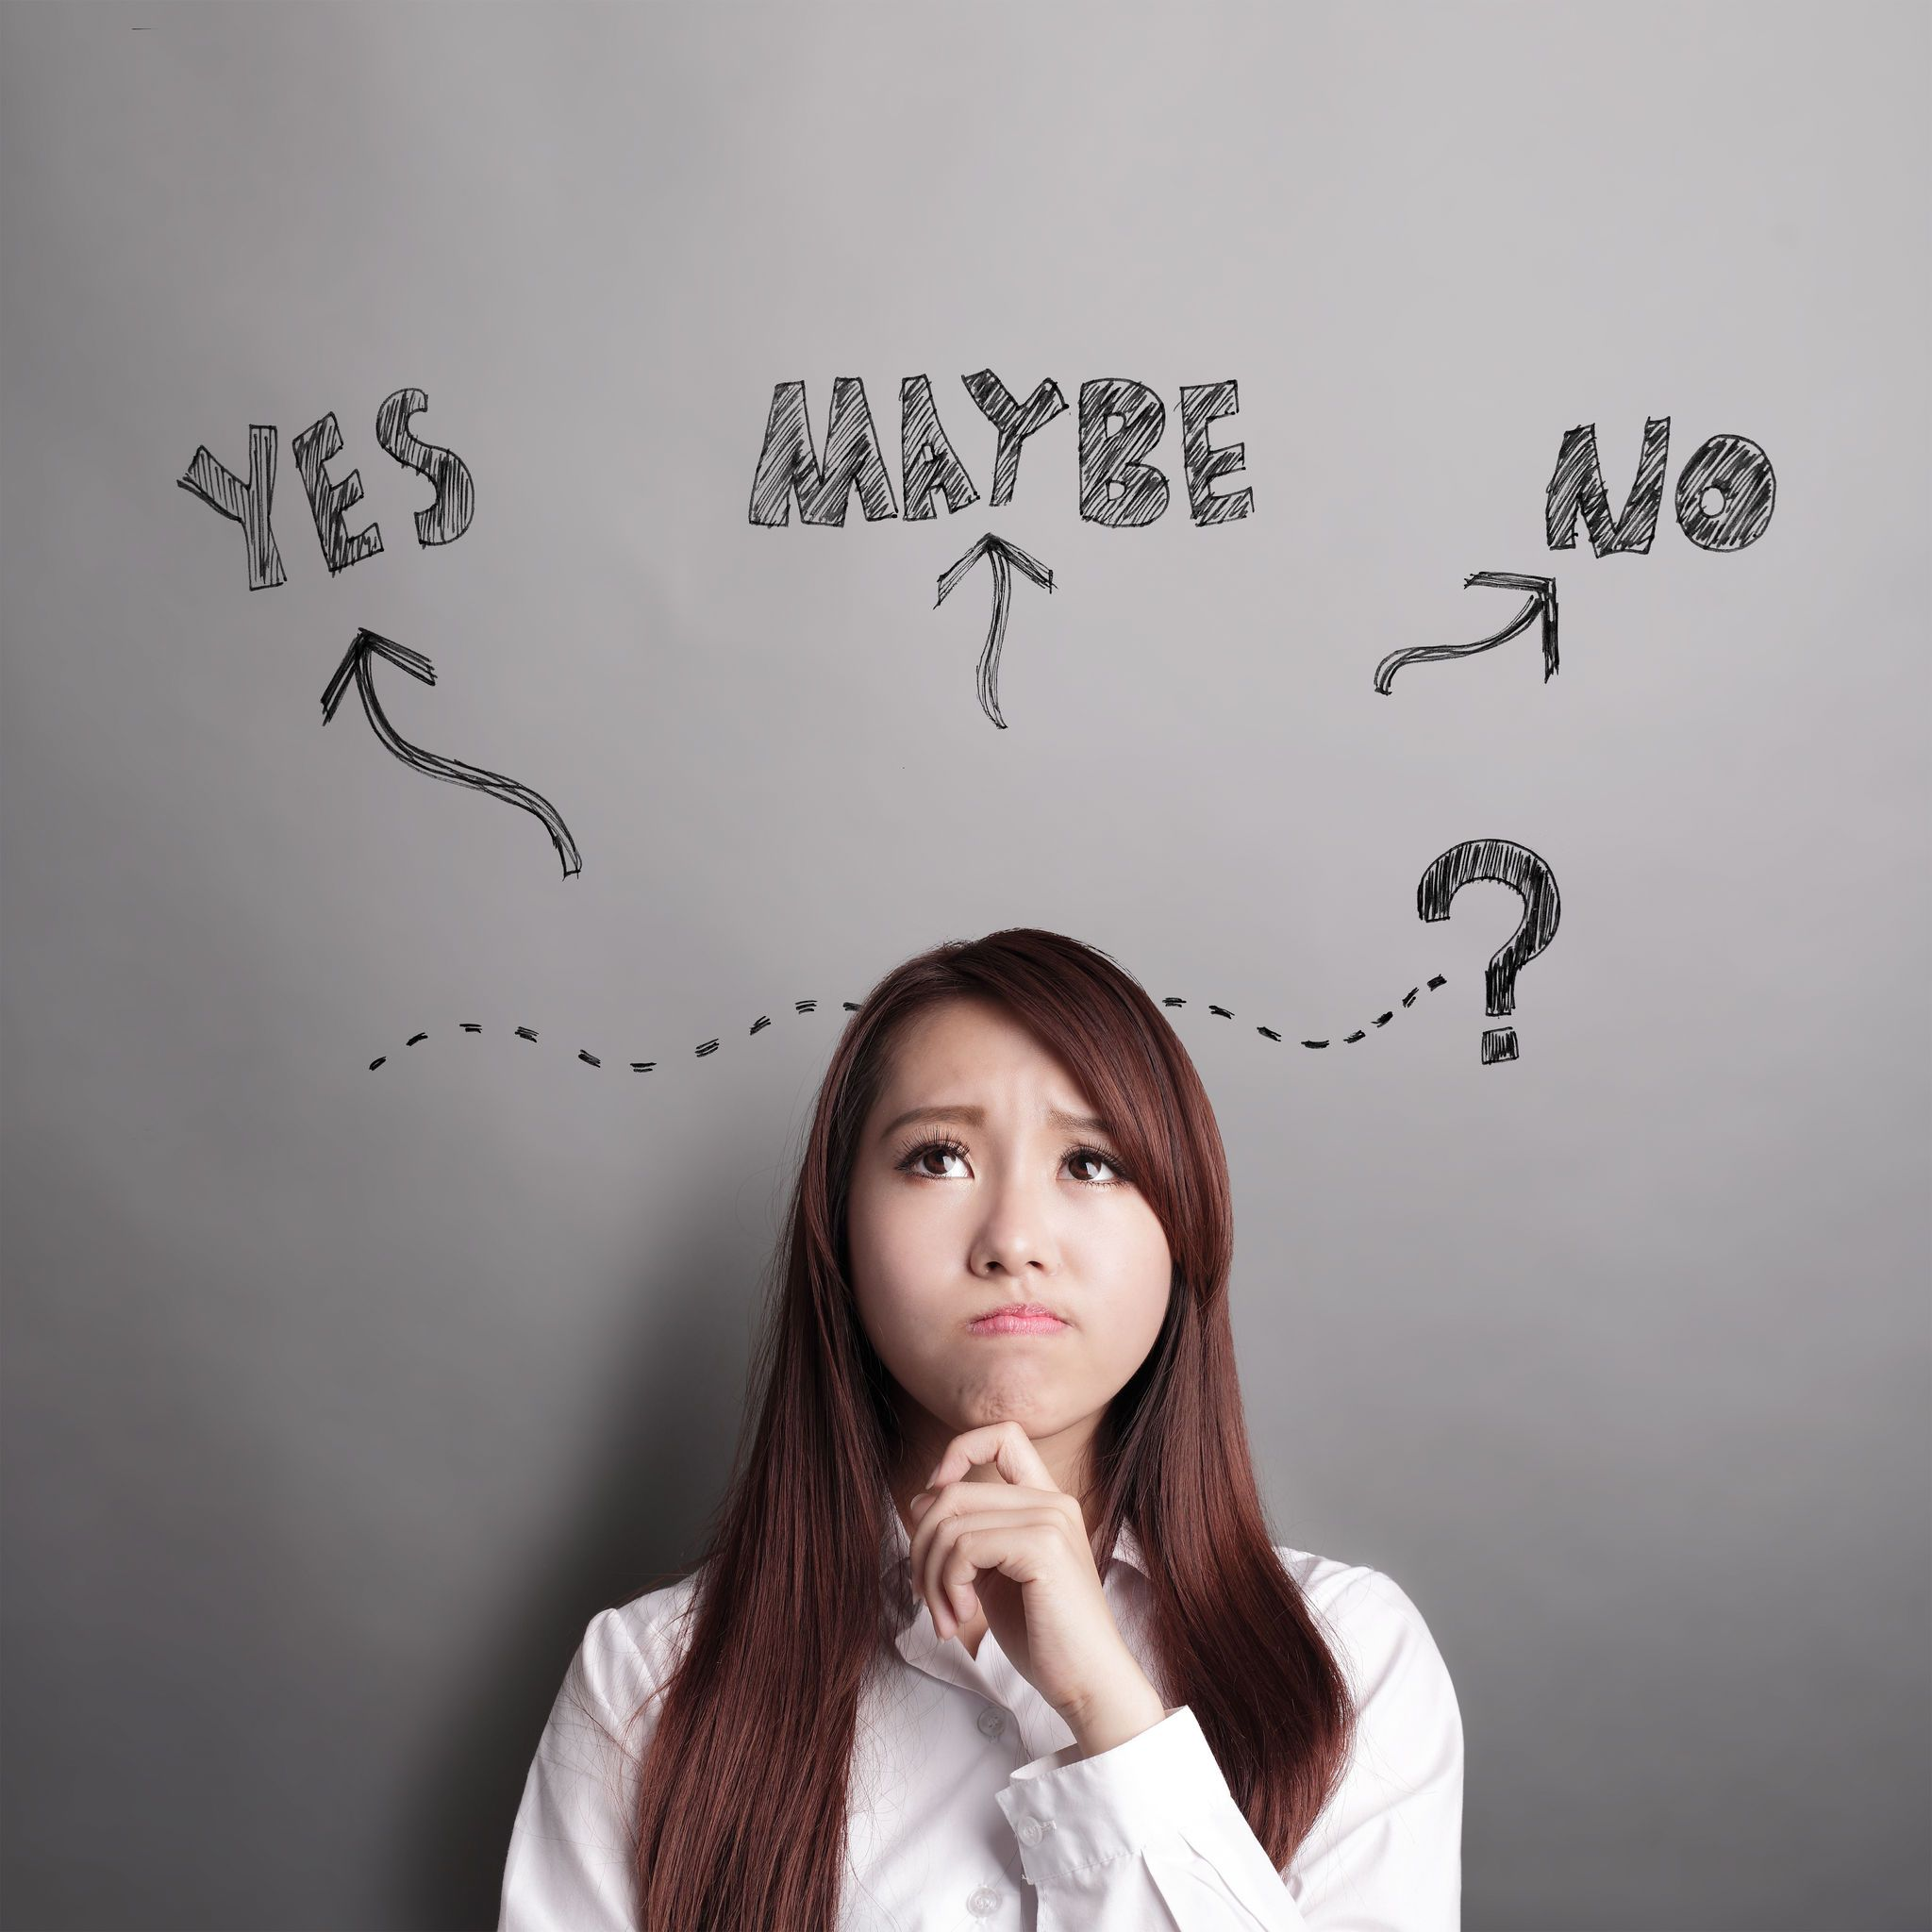 Why do you need finance? The obvious answer is to fulfil your personal or business requirements. Everyone is looking to get loan, either you are looking to fund your education, buy a home, meet business expenses or buy a car. Whatever the reason would be there is dire need of funds to fulfil your needs and